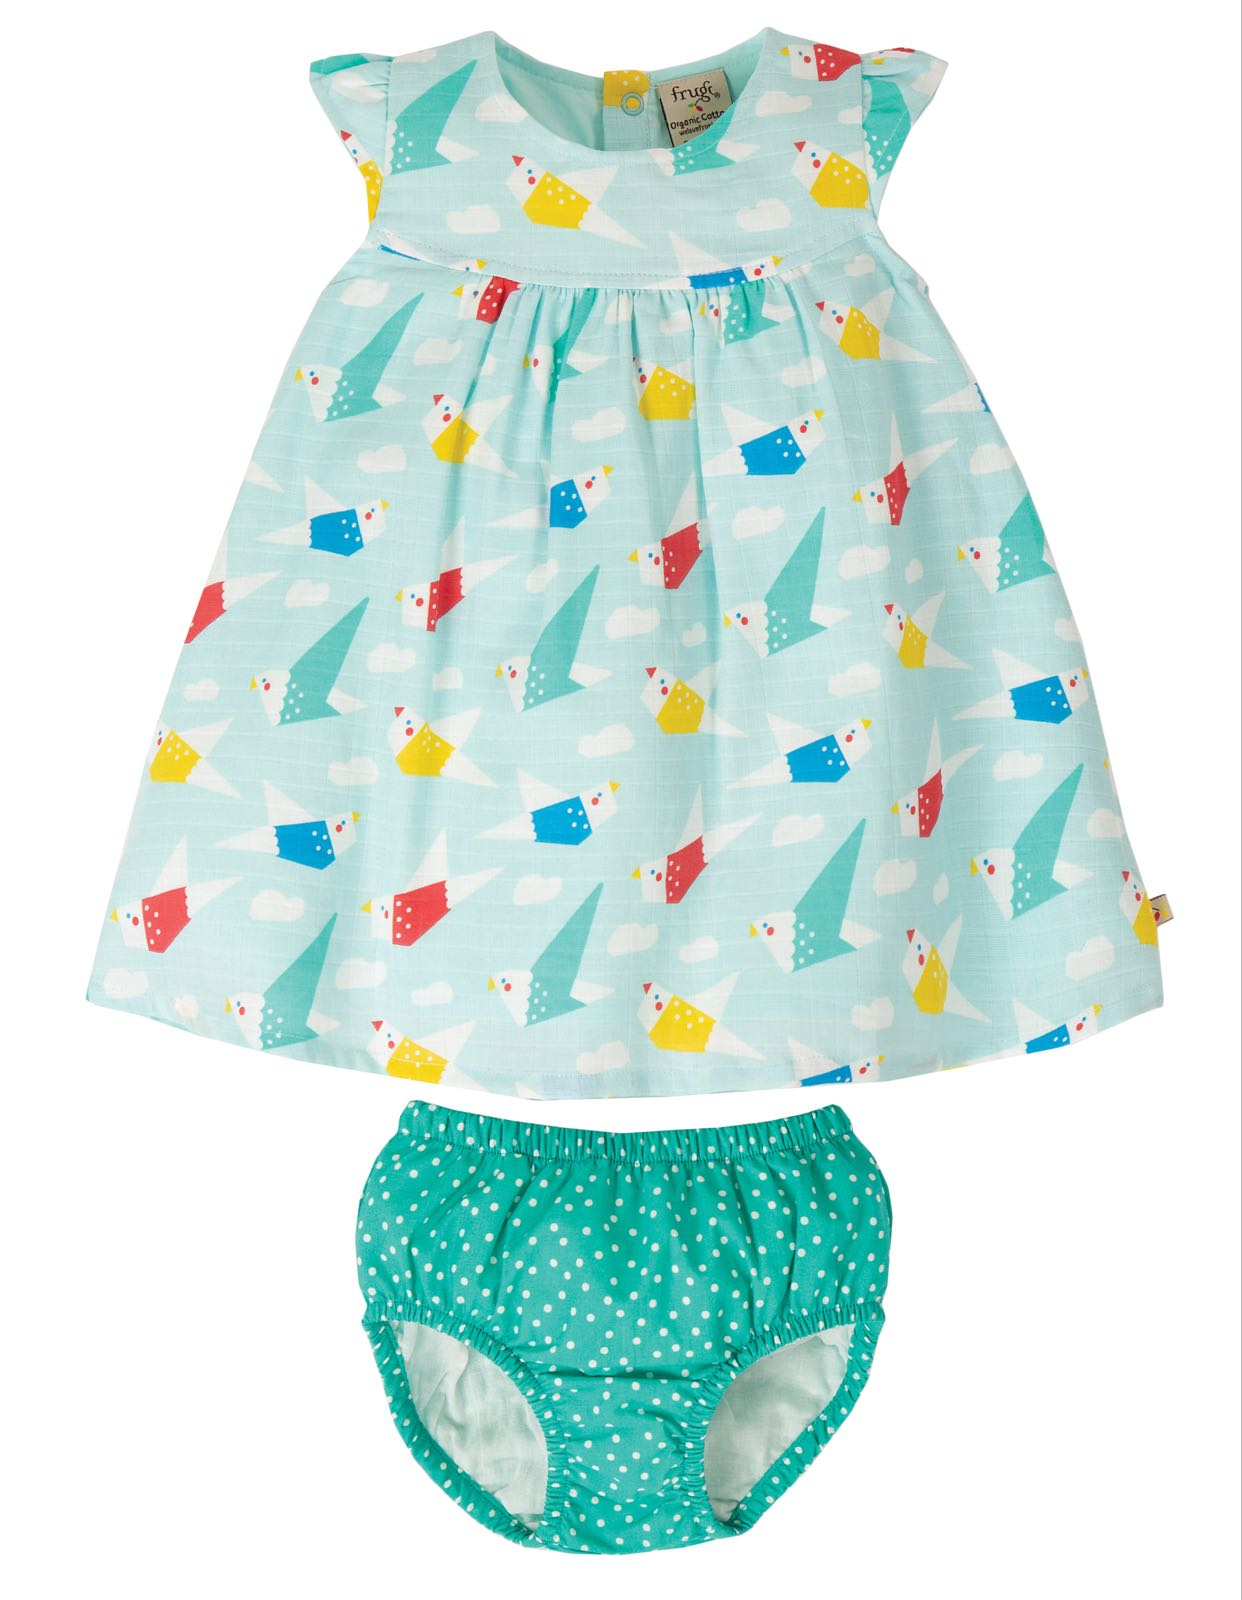 Frugi Dolly Muslin Outfit, Aqua Origami Flight